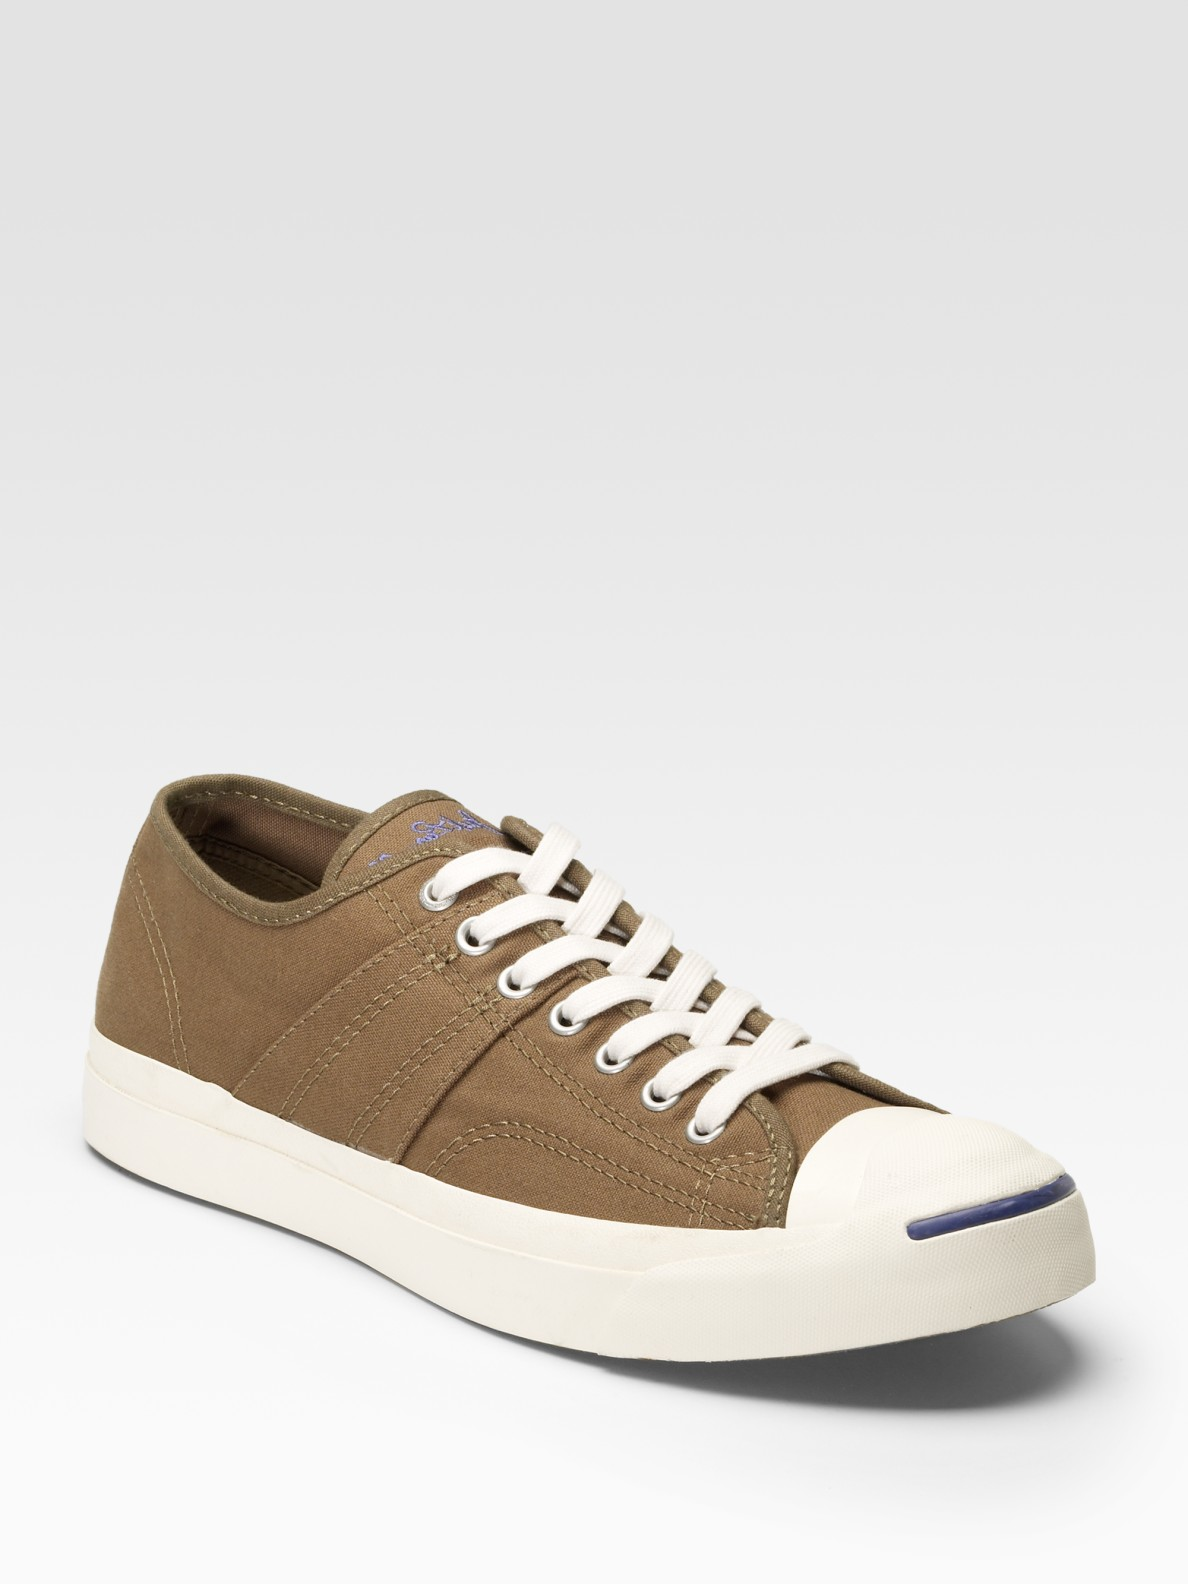 6dafec7335e3 Lyst - Converse Jack Purcell Johnny Low-top Sneakers in Green for Men